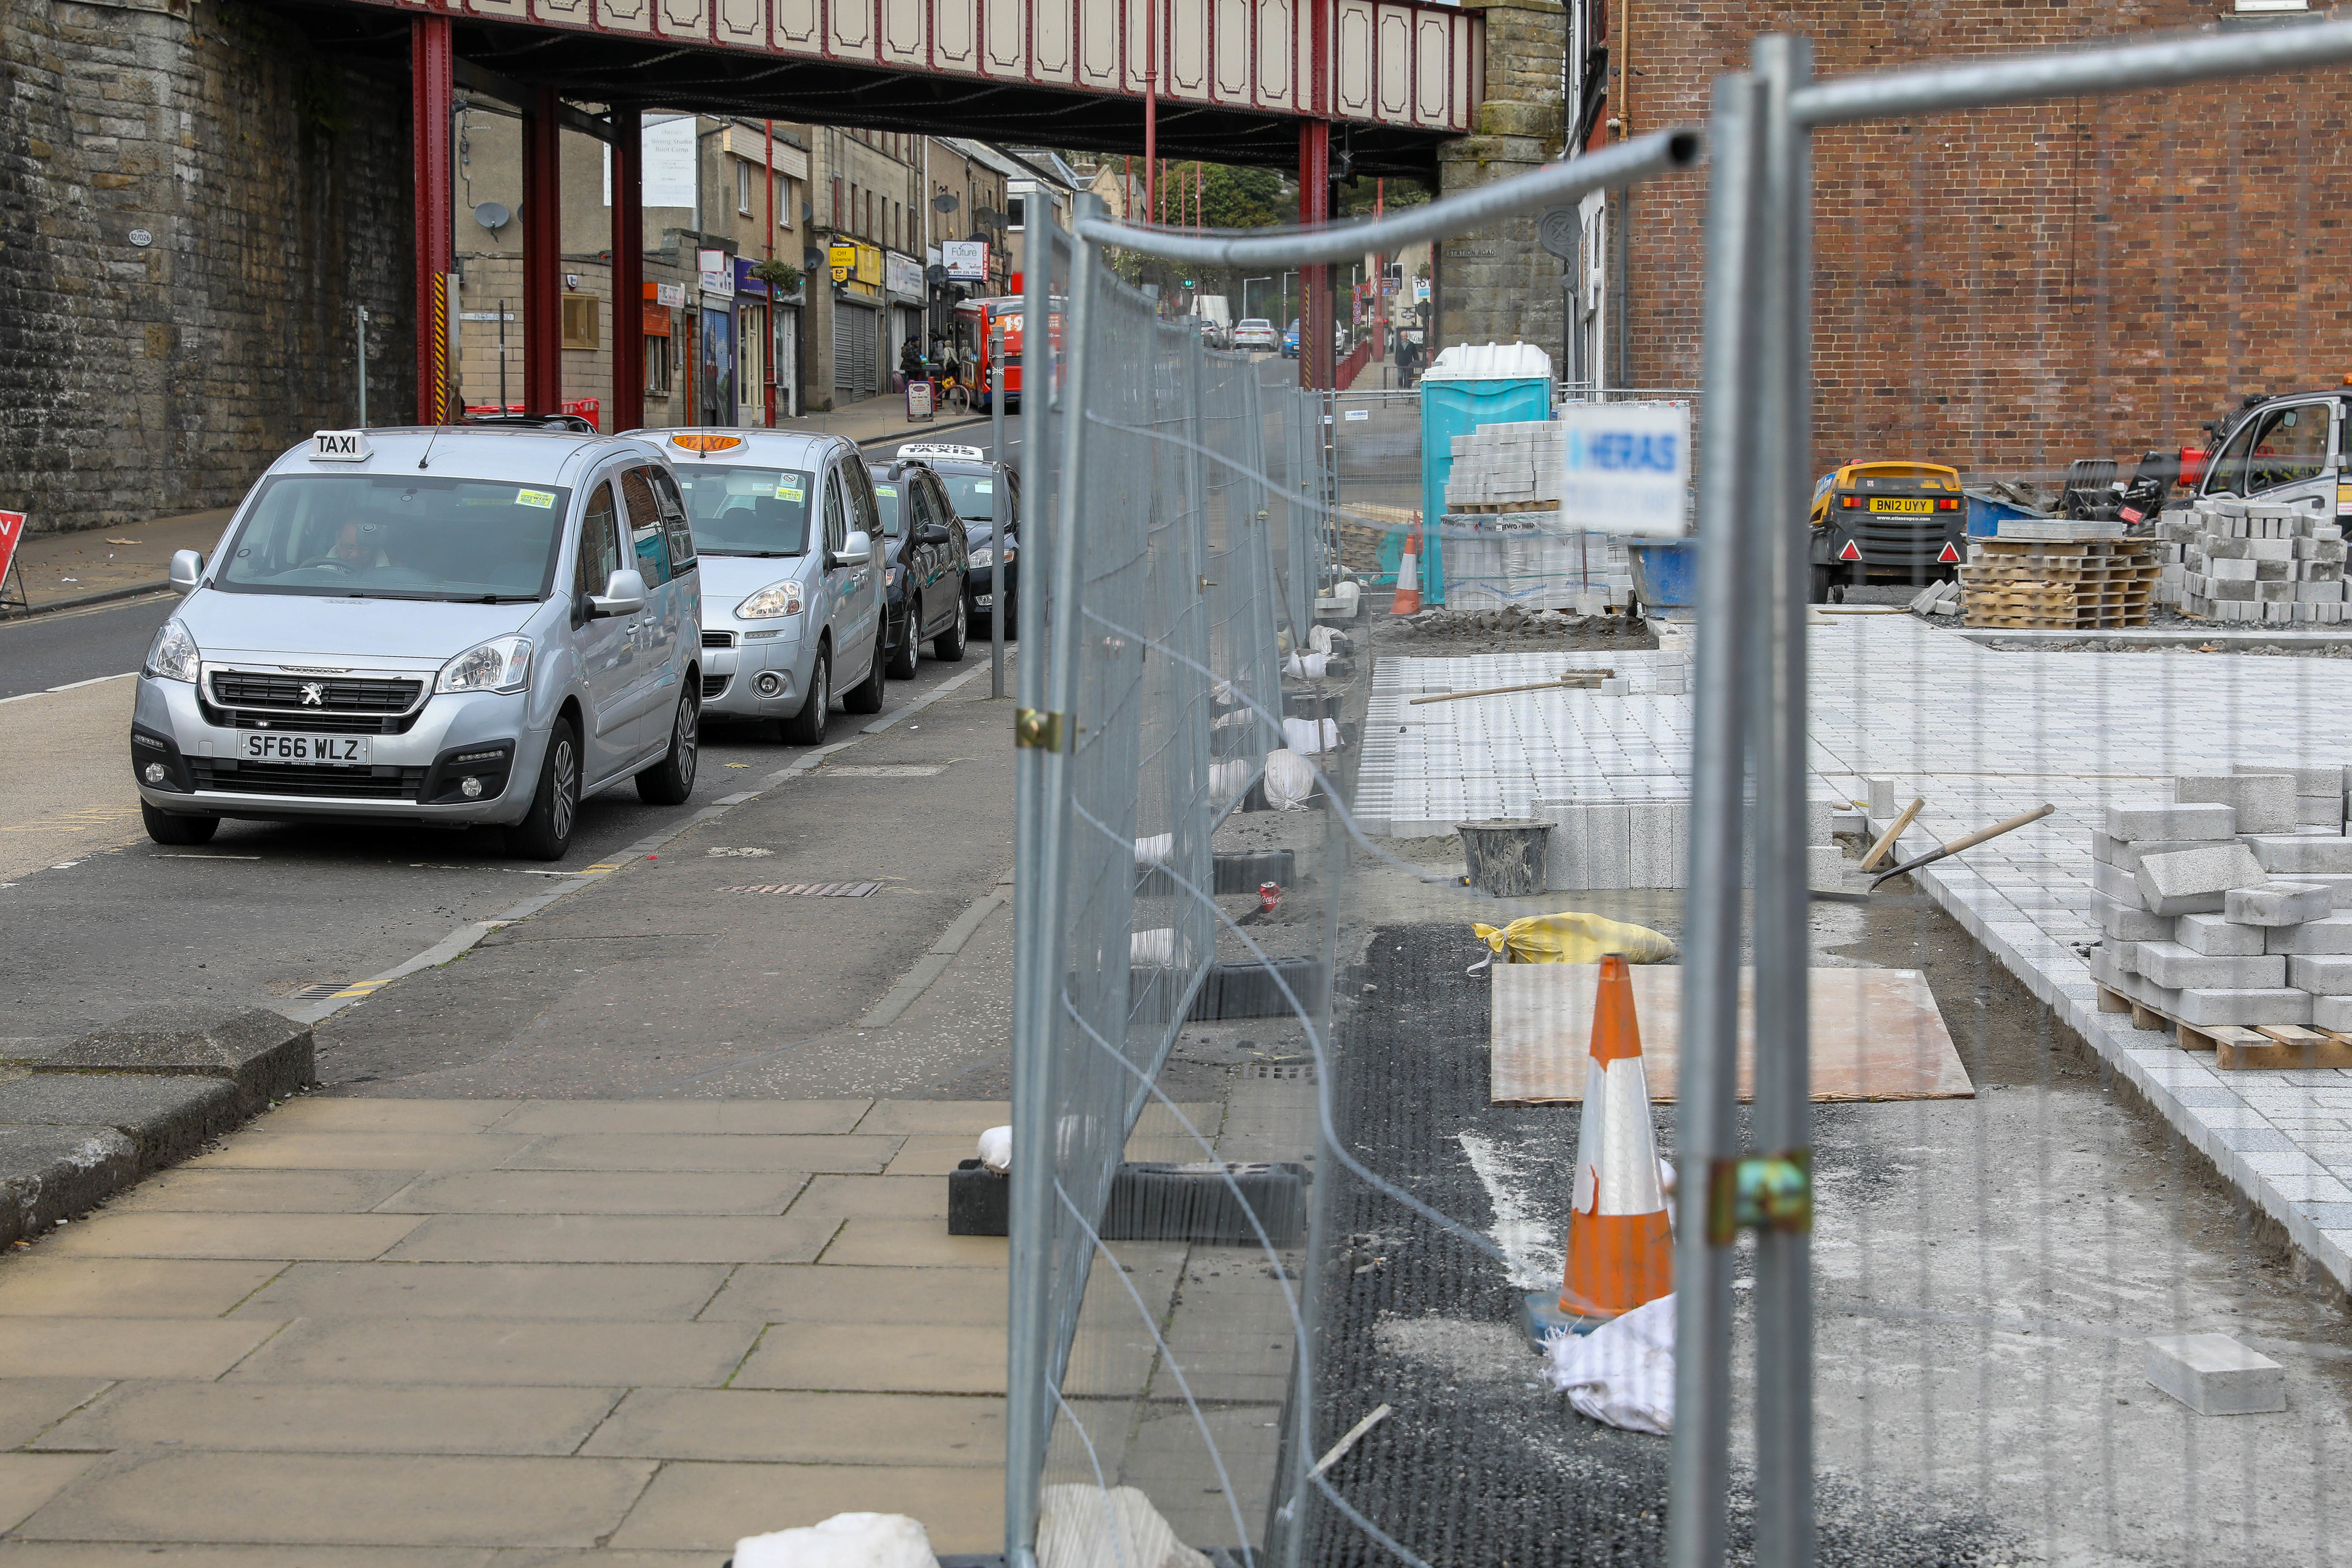 Work has already started on the events space in the green square.